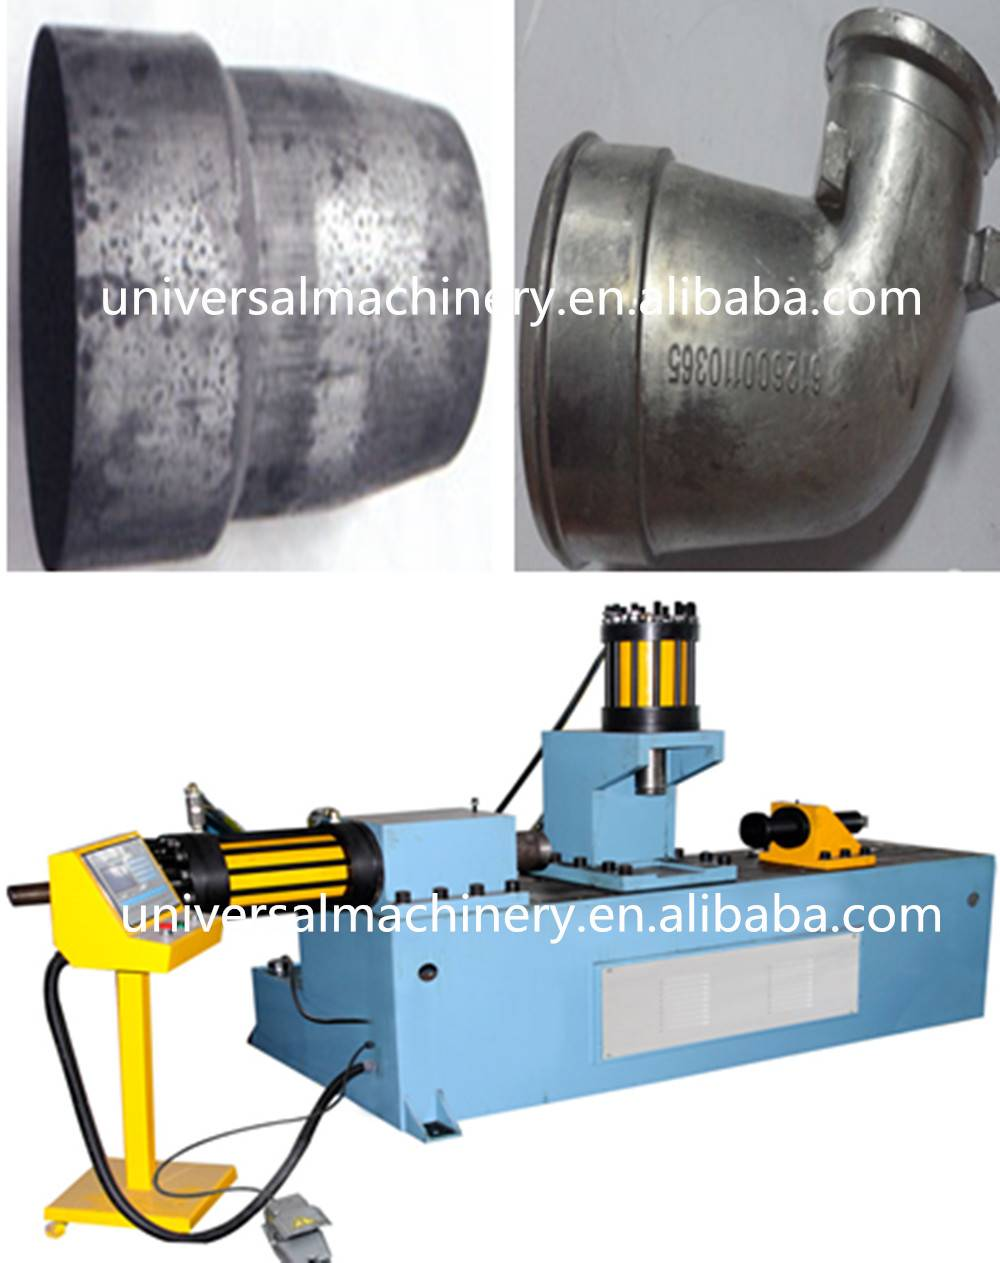 China Factory price Tube Expander for Expanding Reducing Flanging